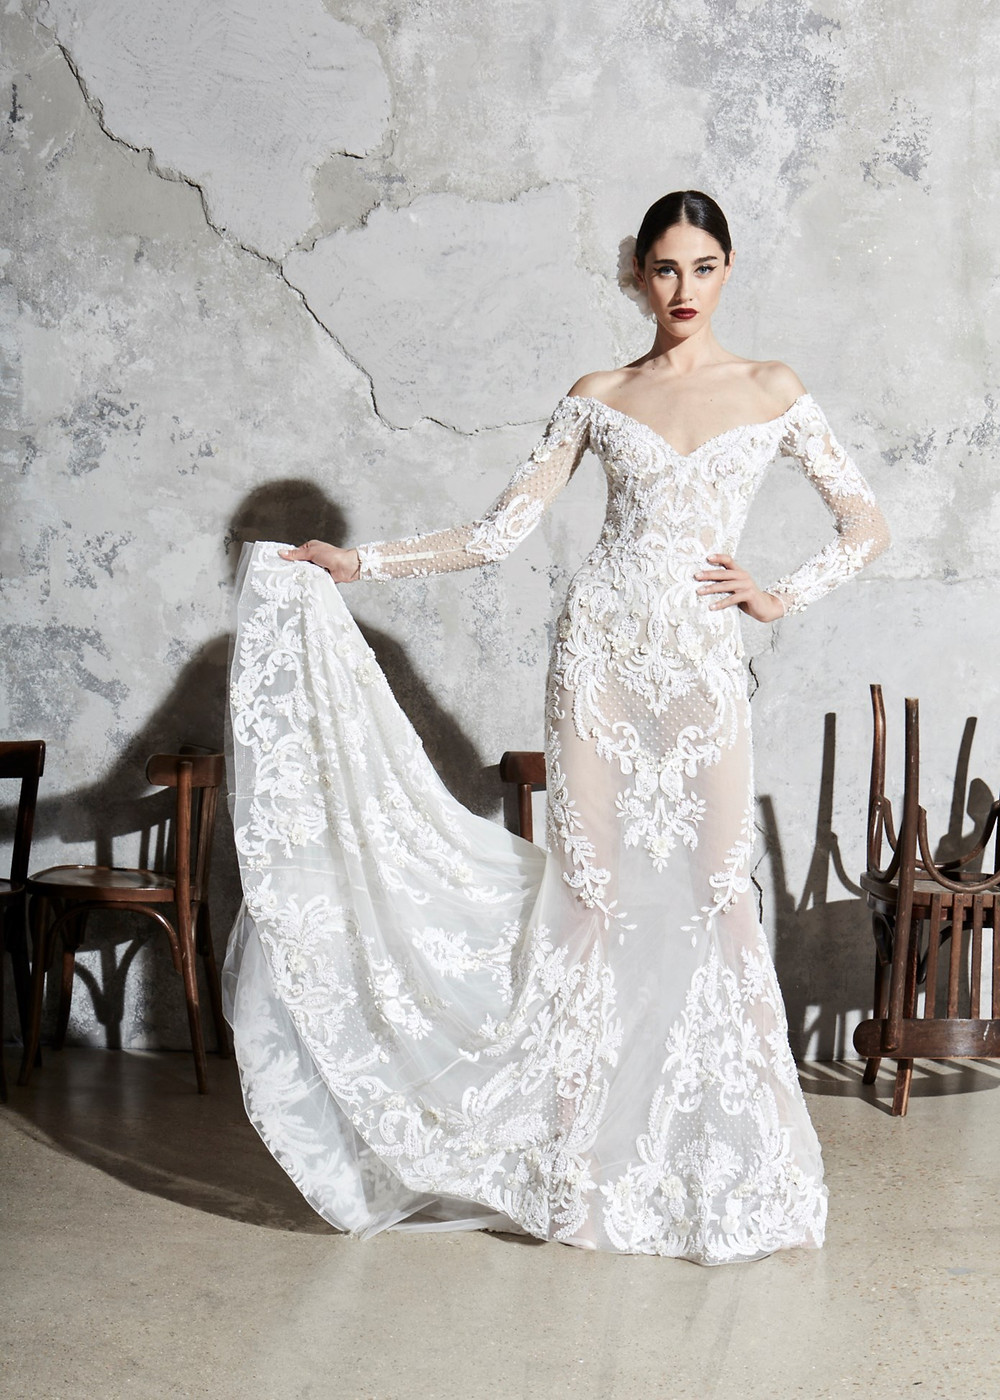 An off the shoulder, lace A-line wedding dress with long sleeves